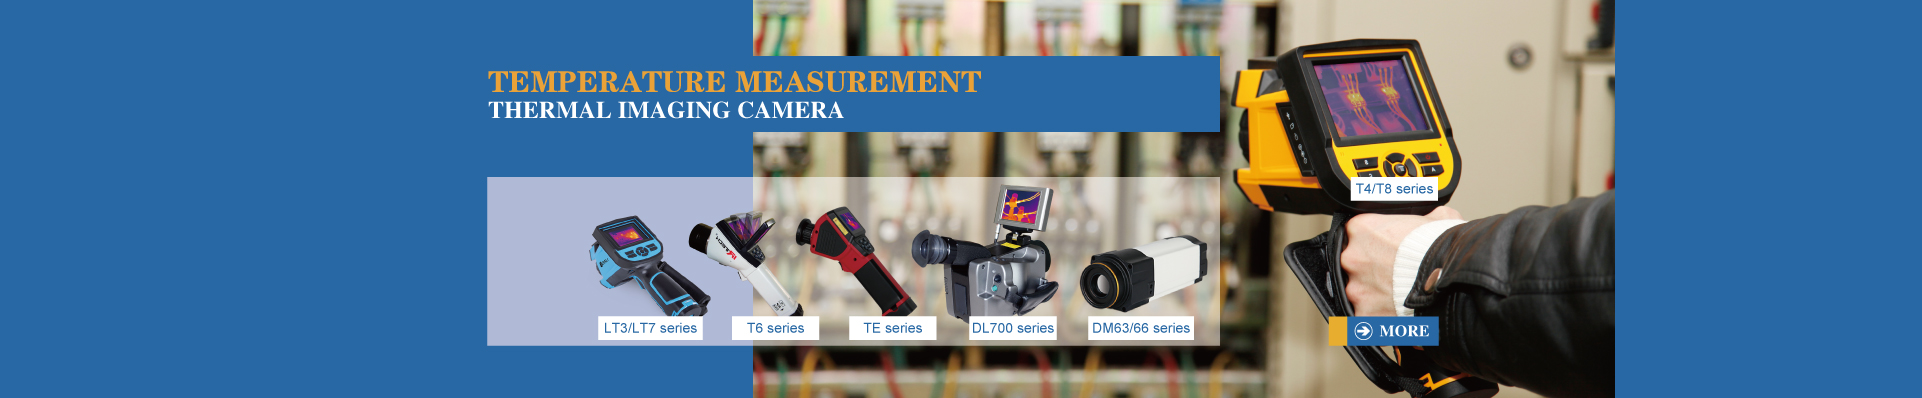 temperature measurement thermal imaging camera